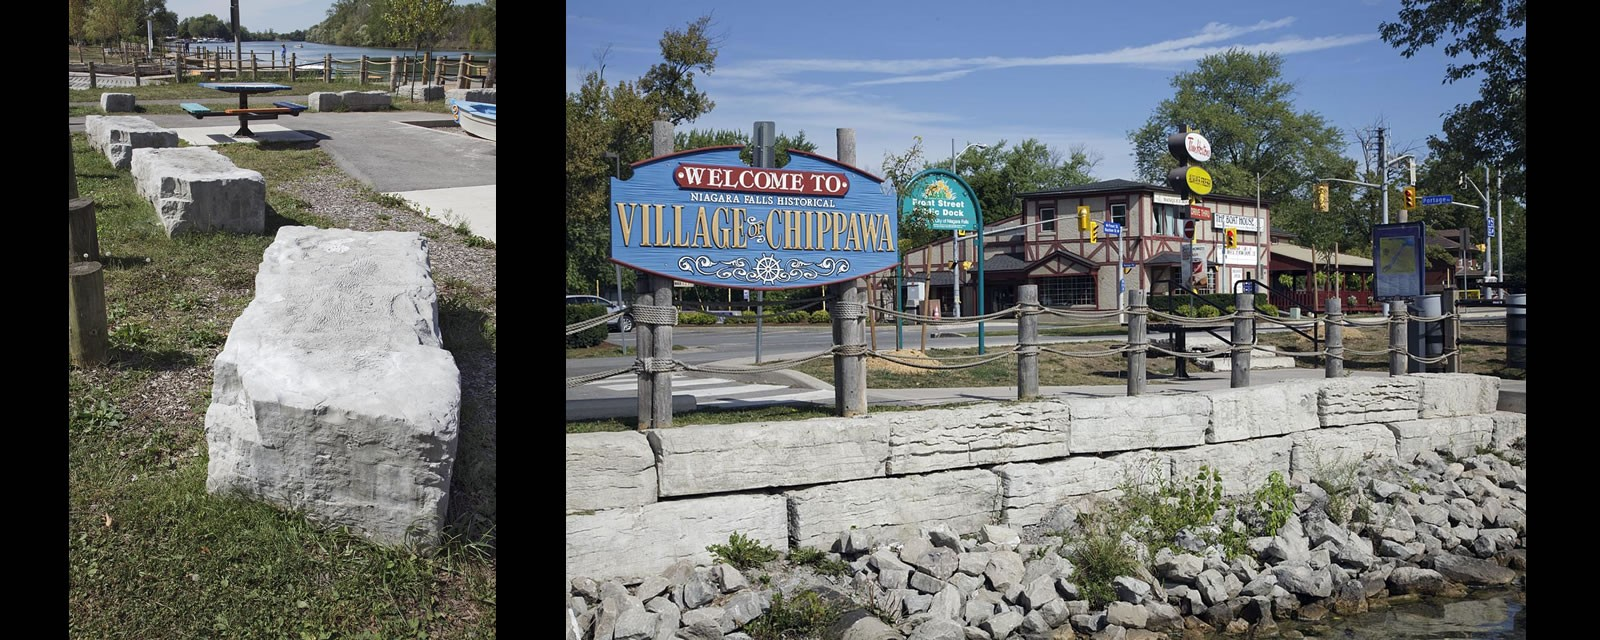 Niagara Falls Historical - Village of Chippawa